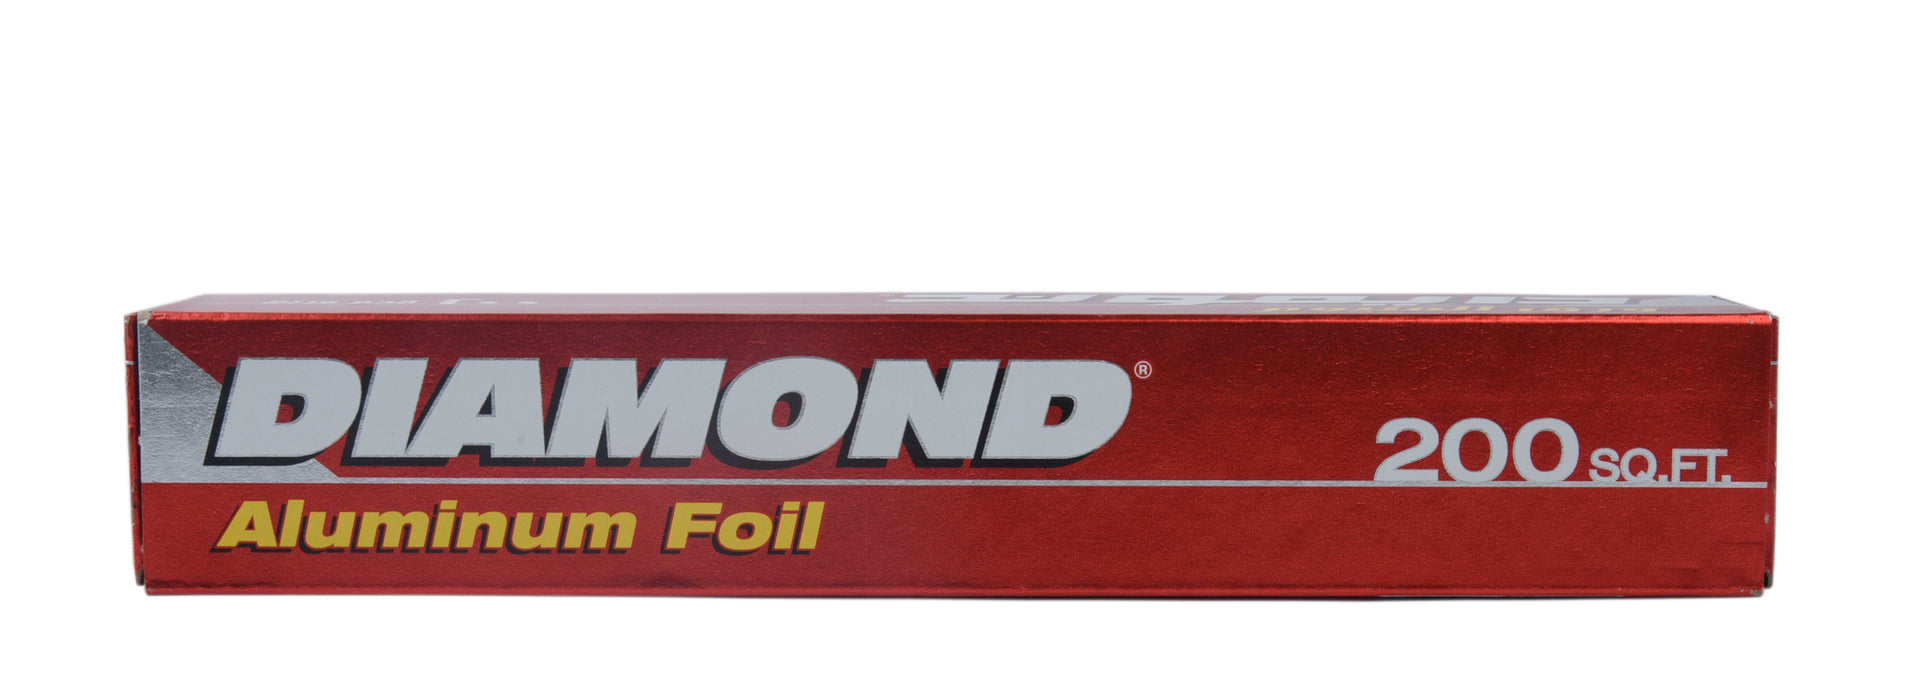 Diamond Aluminum Foil 200 Square Feet